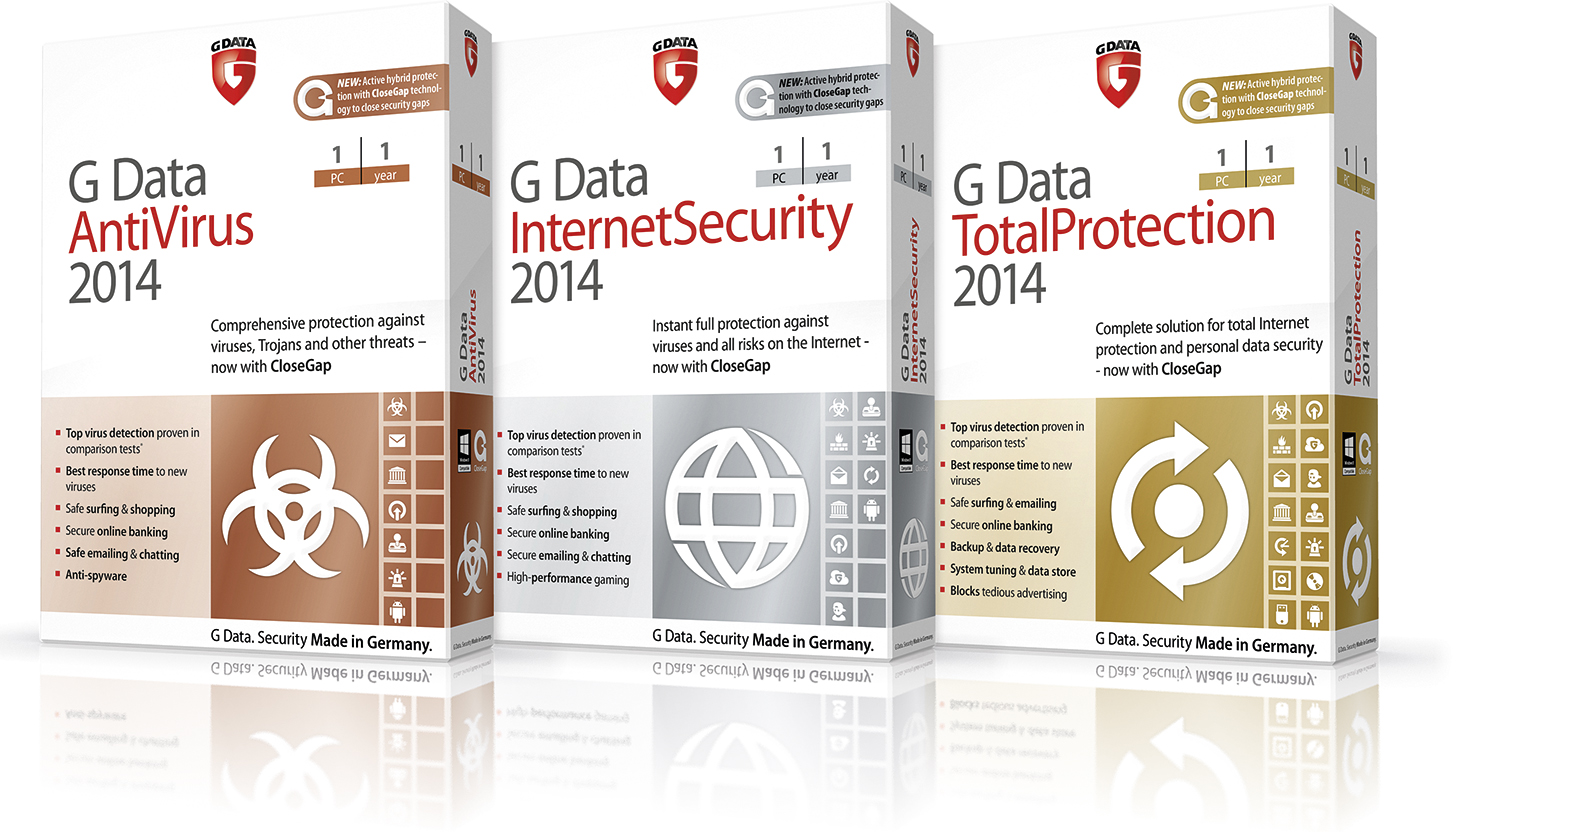 Gdata 2014 download and promo code, coupon code